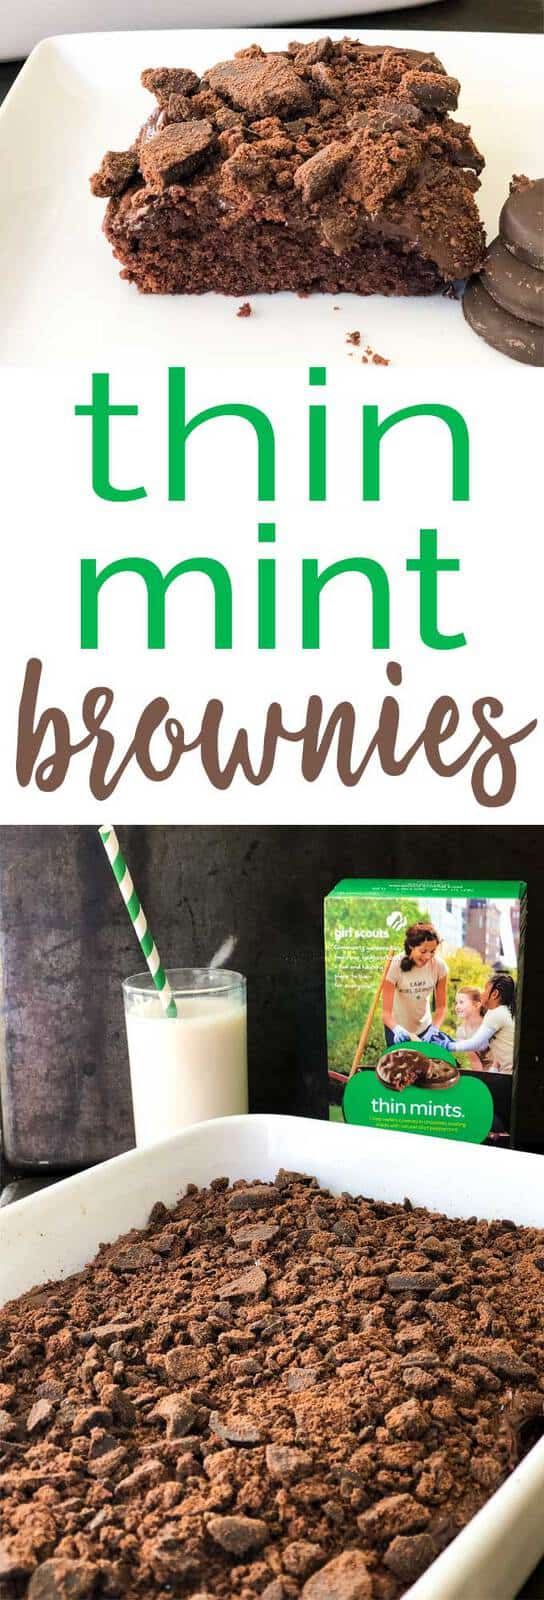 Homemade chocolate brownies topped with chocolate frosting and Thin Mint Girl Scout cookies. #recipe #chocolate